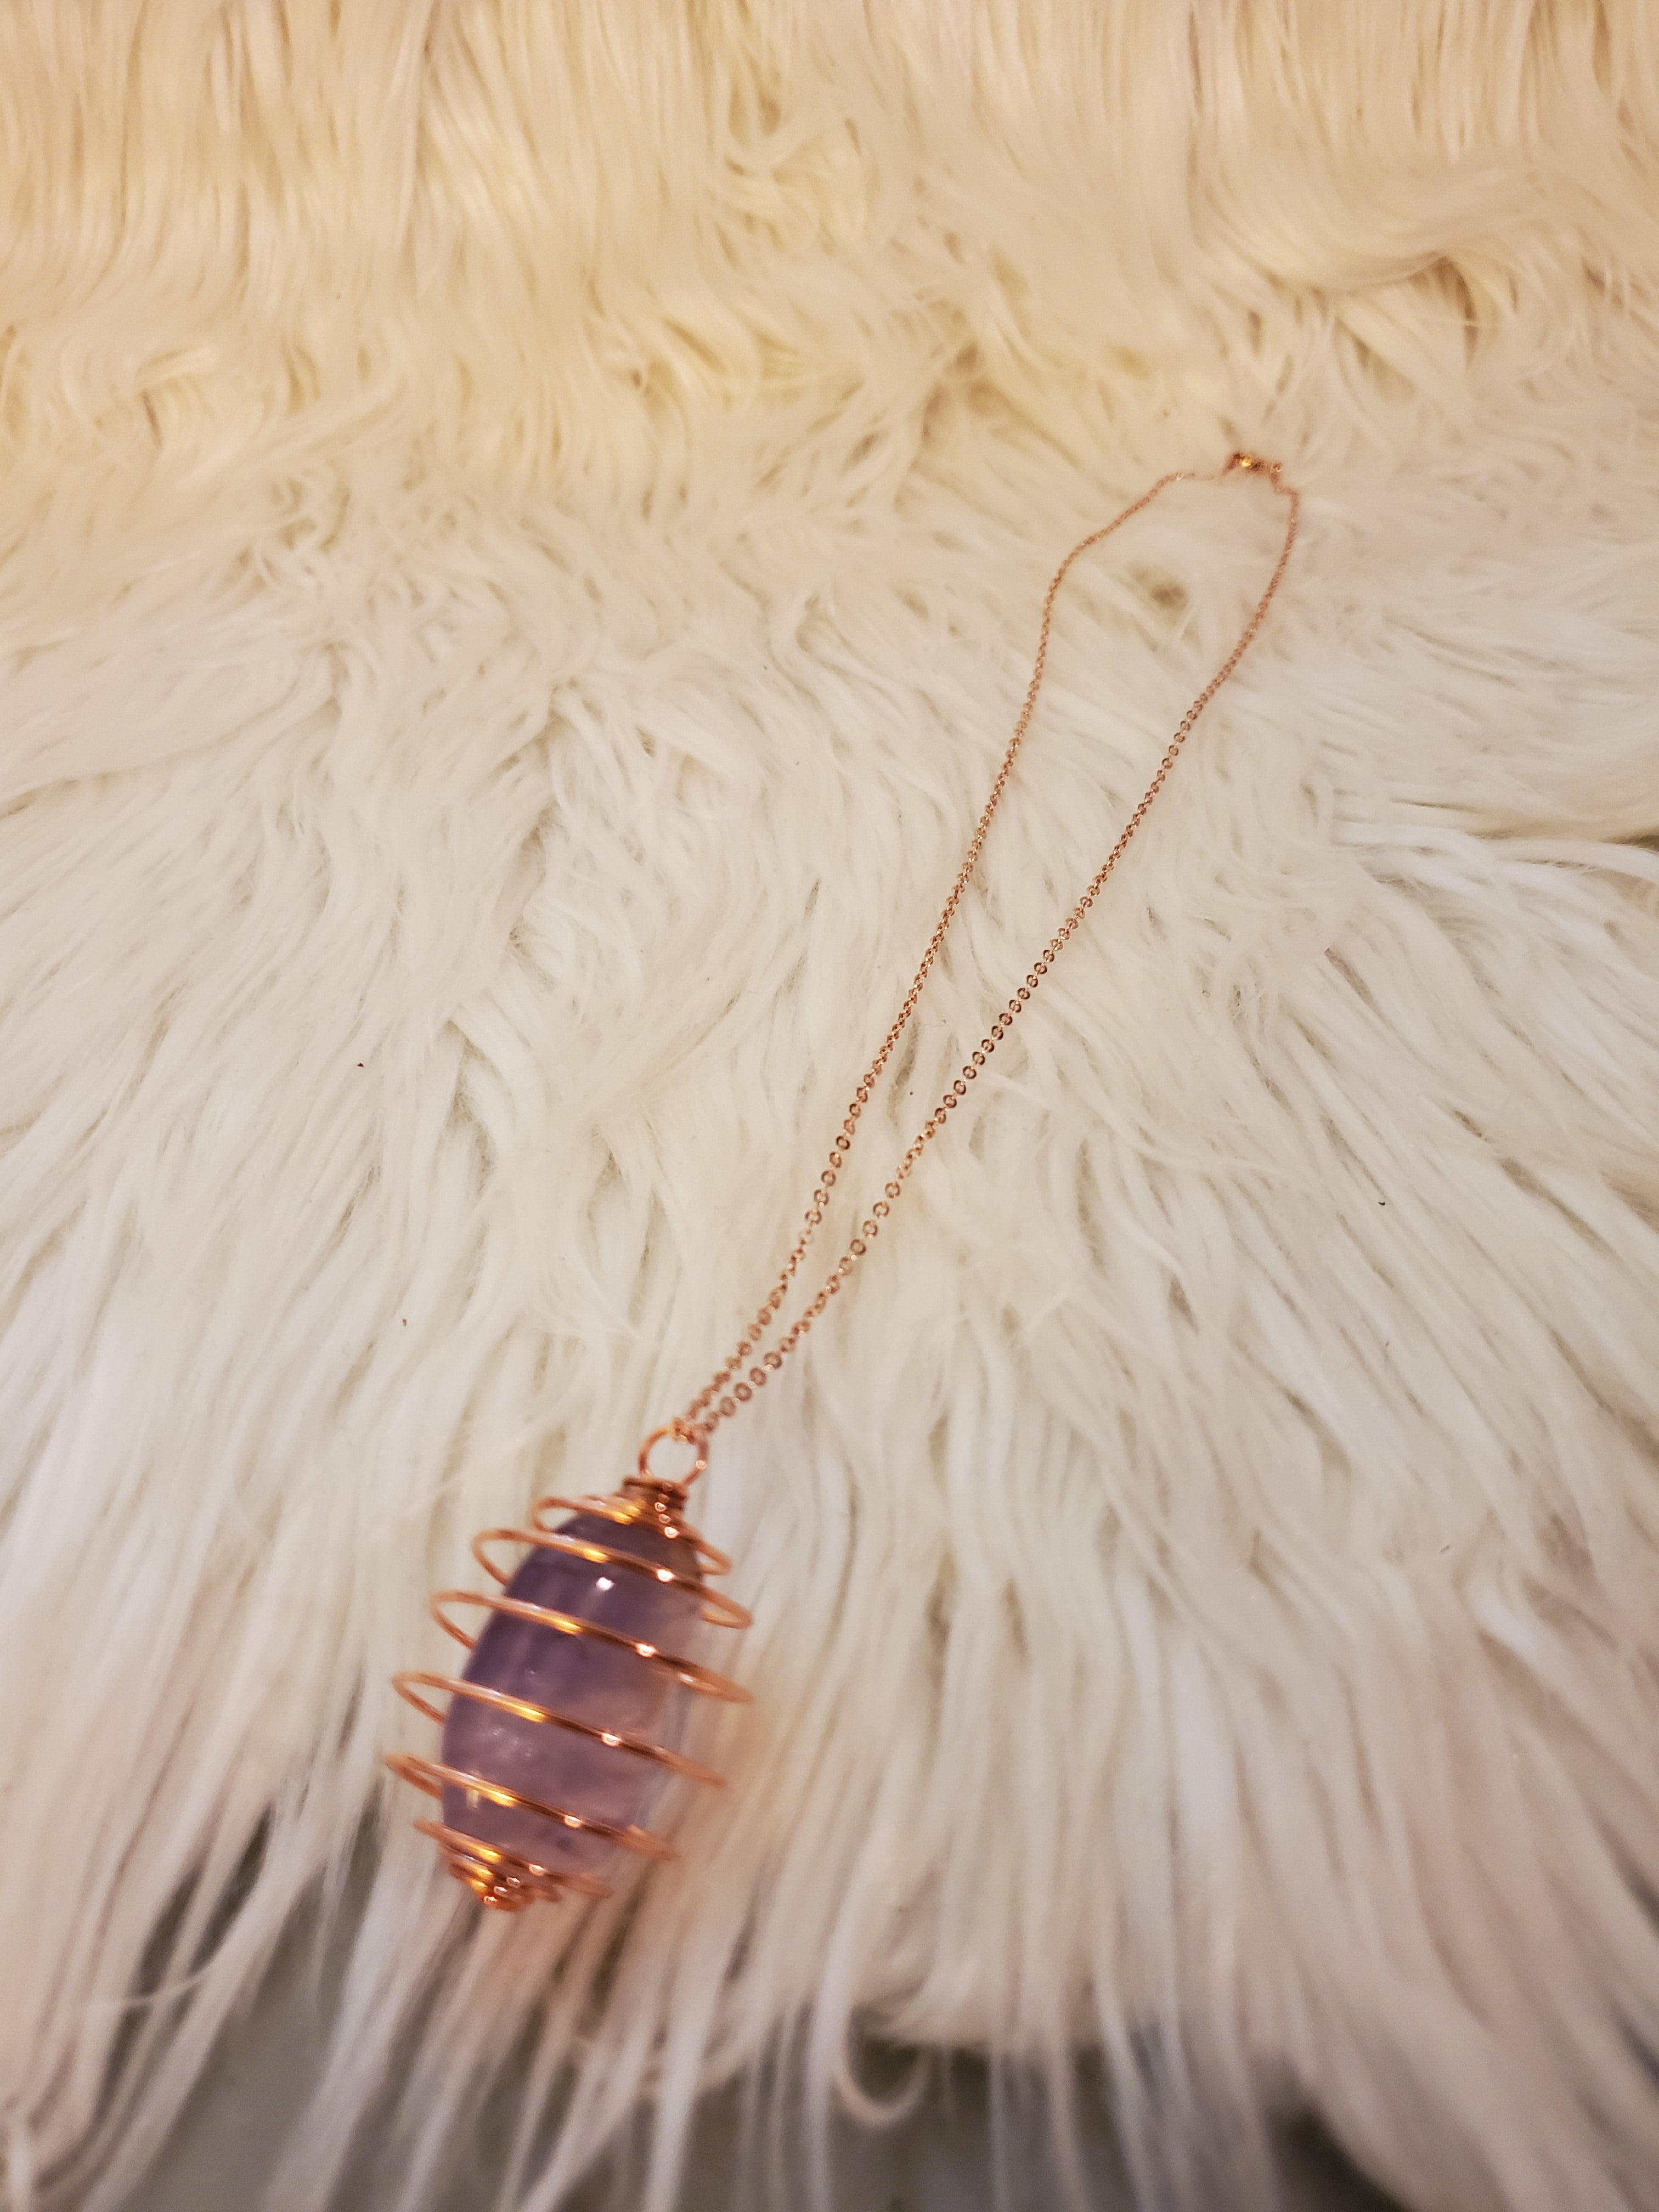 Crystal Healing Necklace (Amethyst)